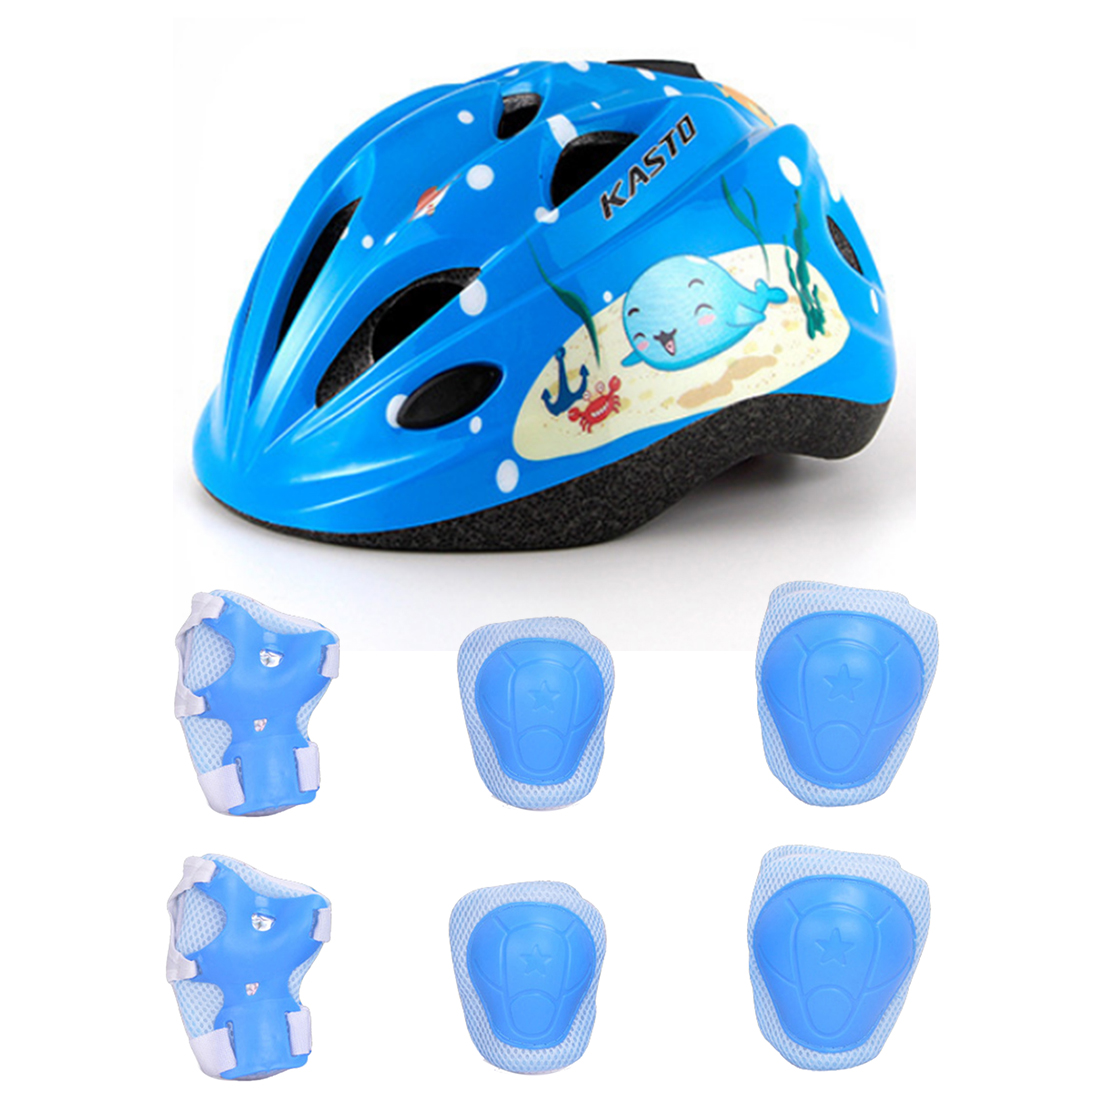 7Pcs Child Helmet Sport Safety Protective Body Gear Pad Set for Skating Bicycling Protection - Blue M